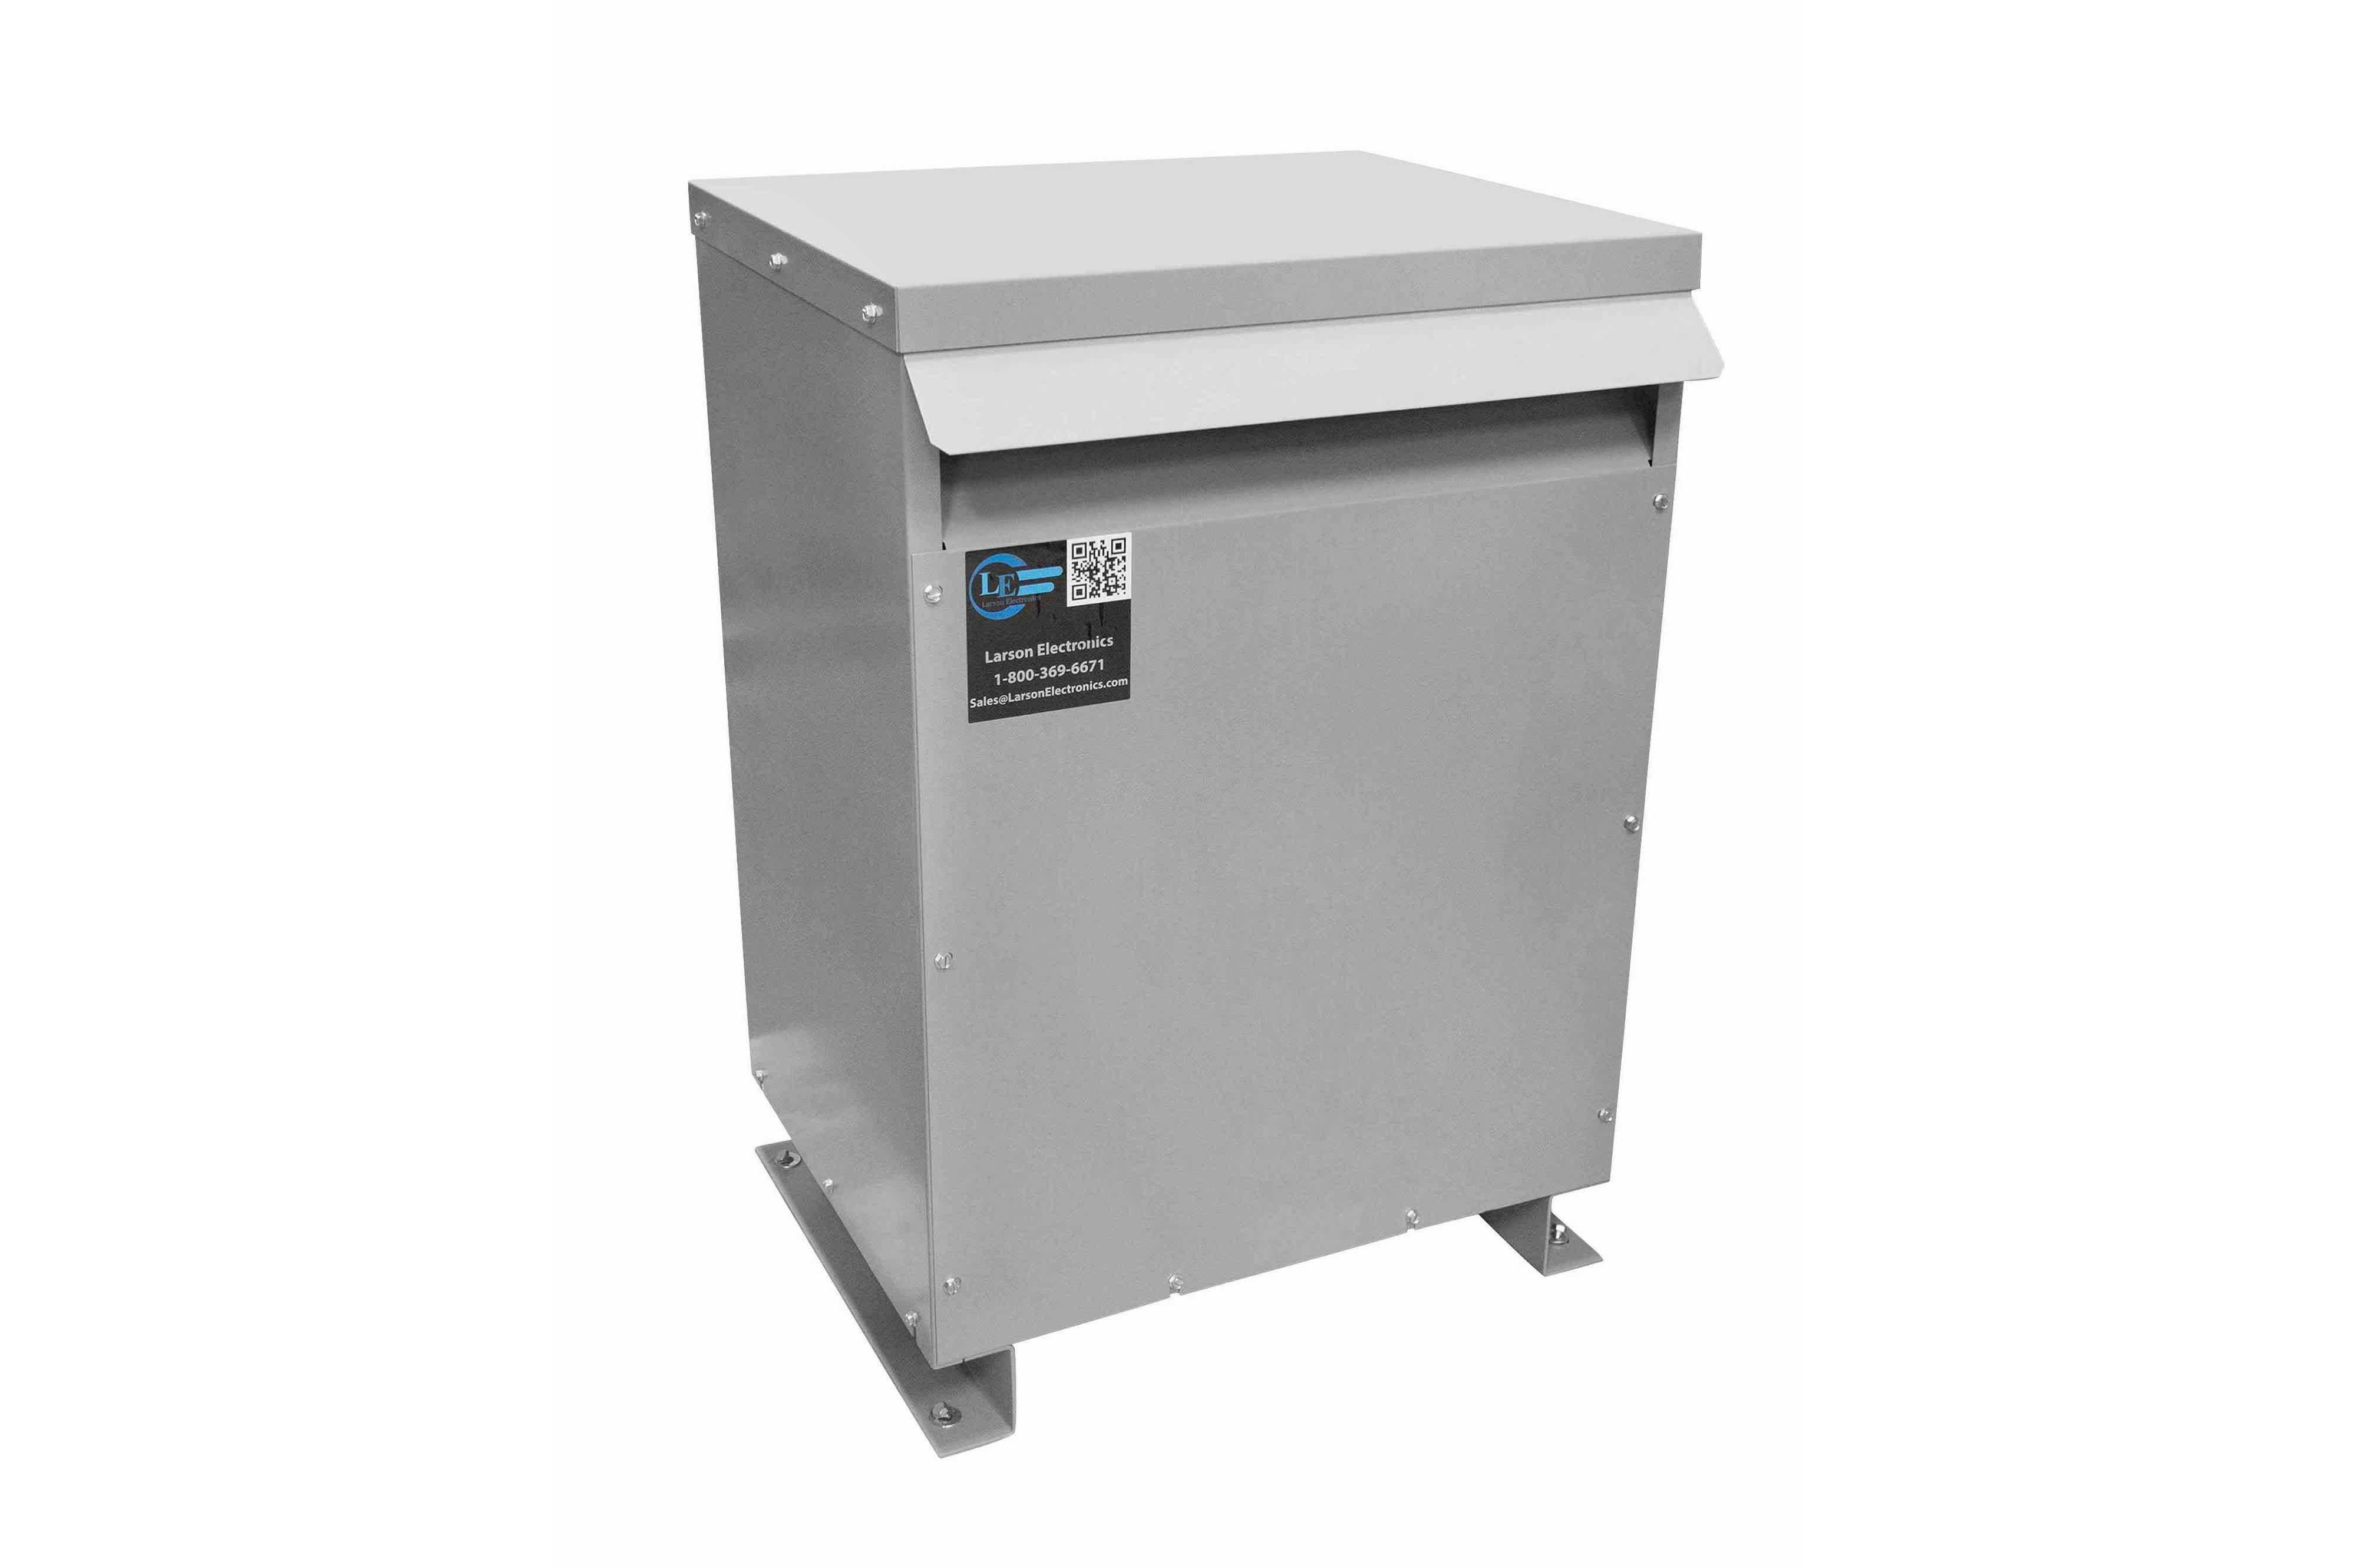 36 kVA 3PH Isolation Transformer, 230V Wye Primary, 208Y/120 Wye-N Secondary, N3R, Ventilated, 60 Hz